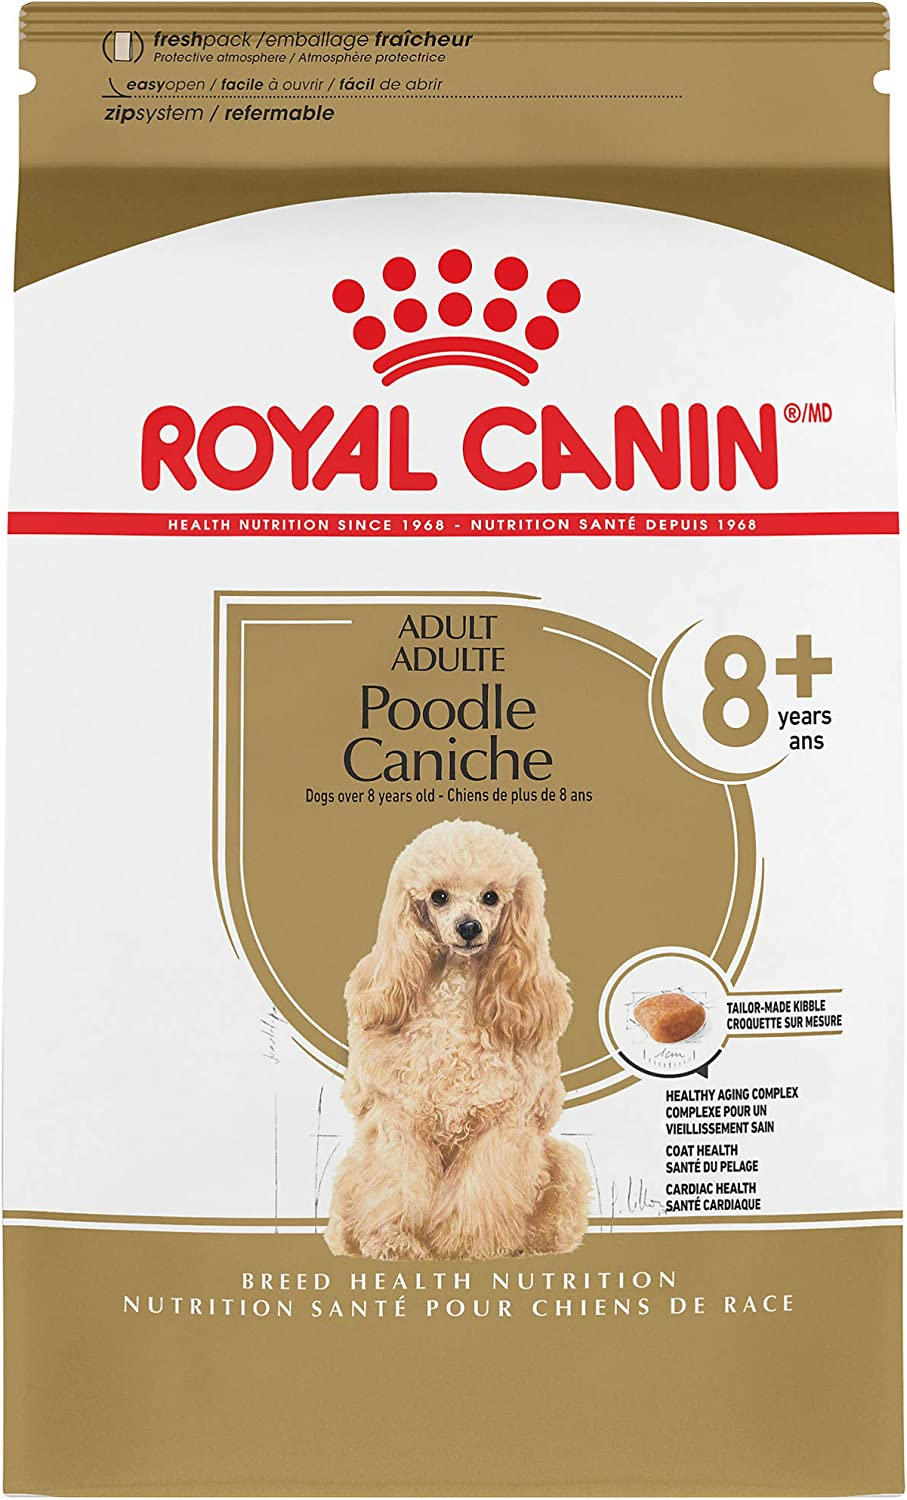 Royal Canin Poodle Adult 8+ Breed Specific Dry Dog Food for Senior Dogs, 3 lb. bag